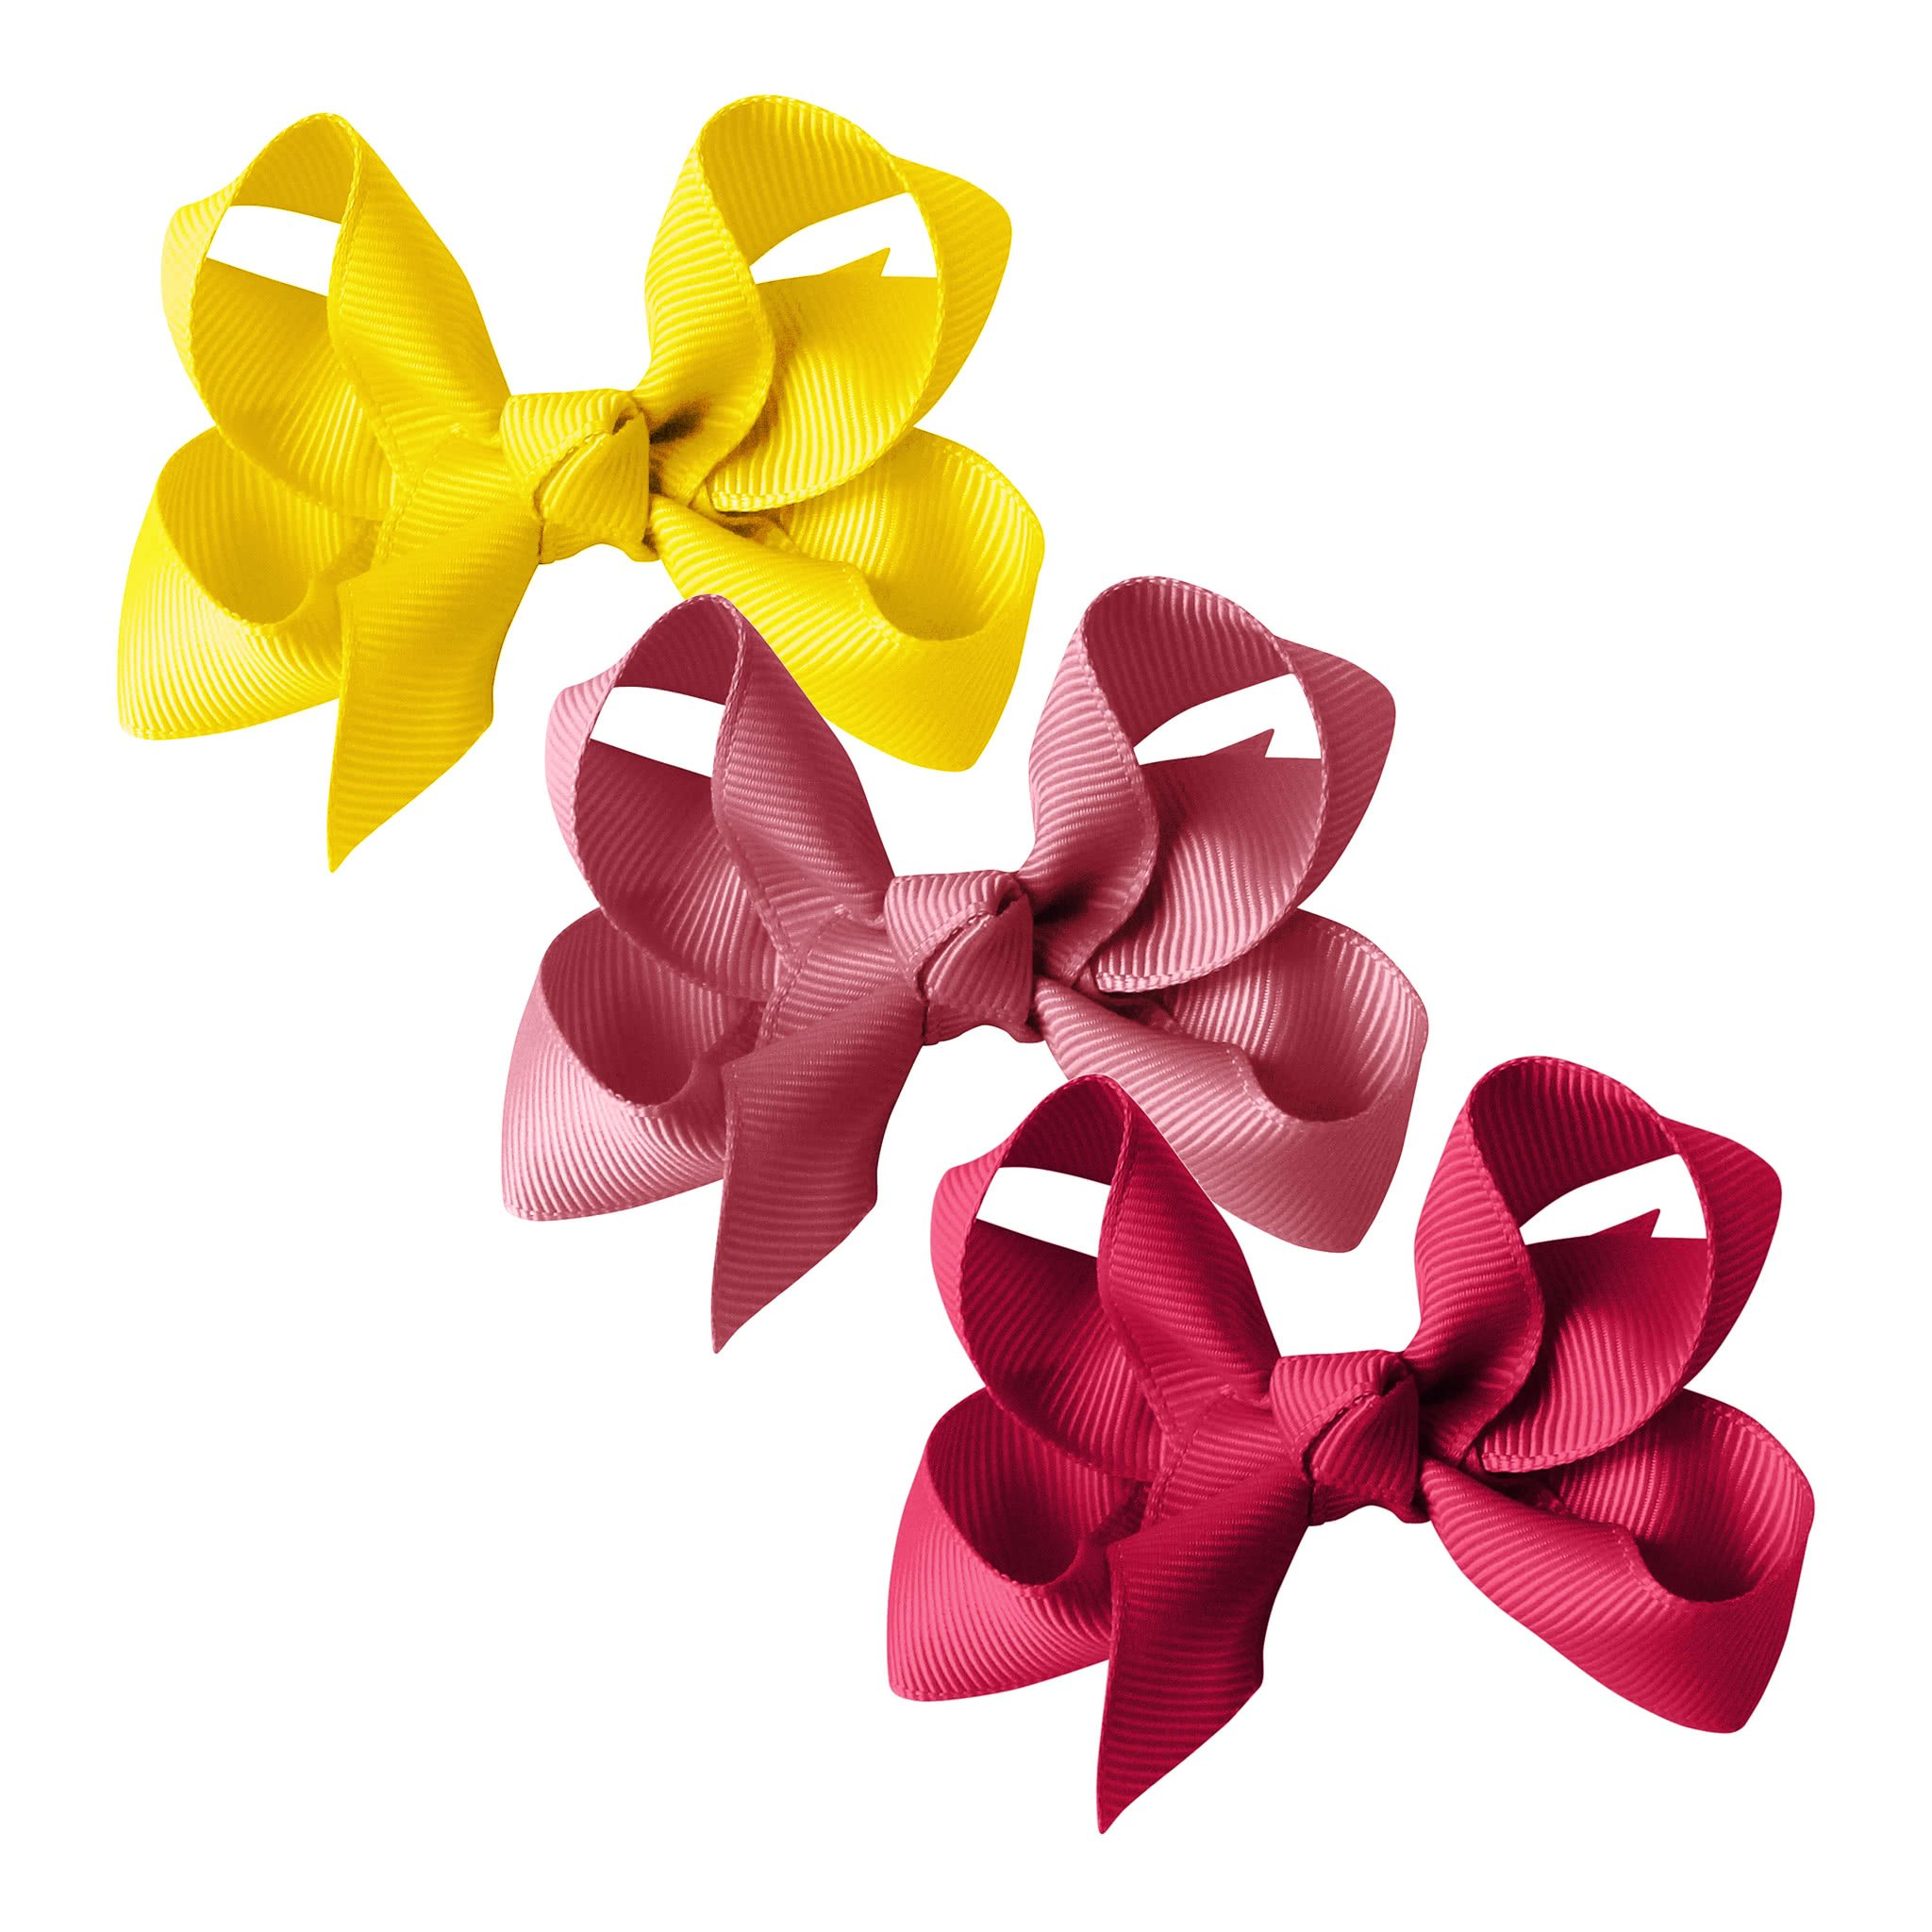 Image of Milledeux® gift set - Grosgrain Collection - 3 Medium boutique bows - yellow/pink